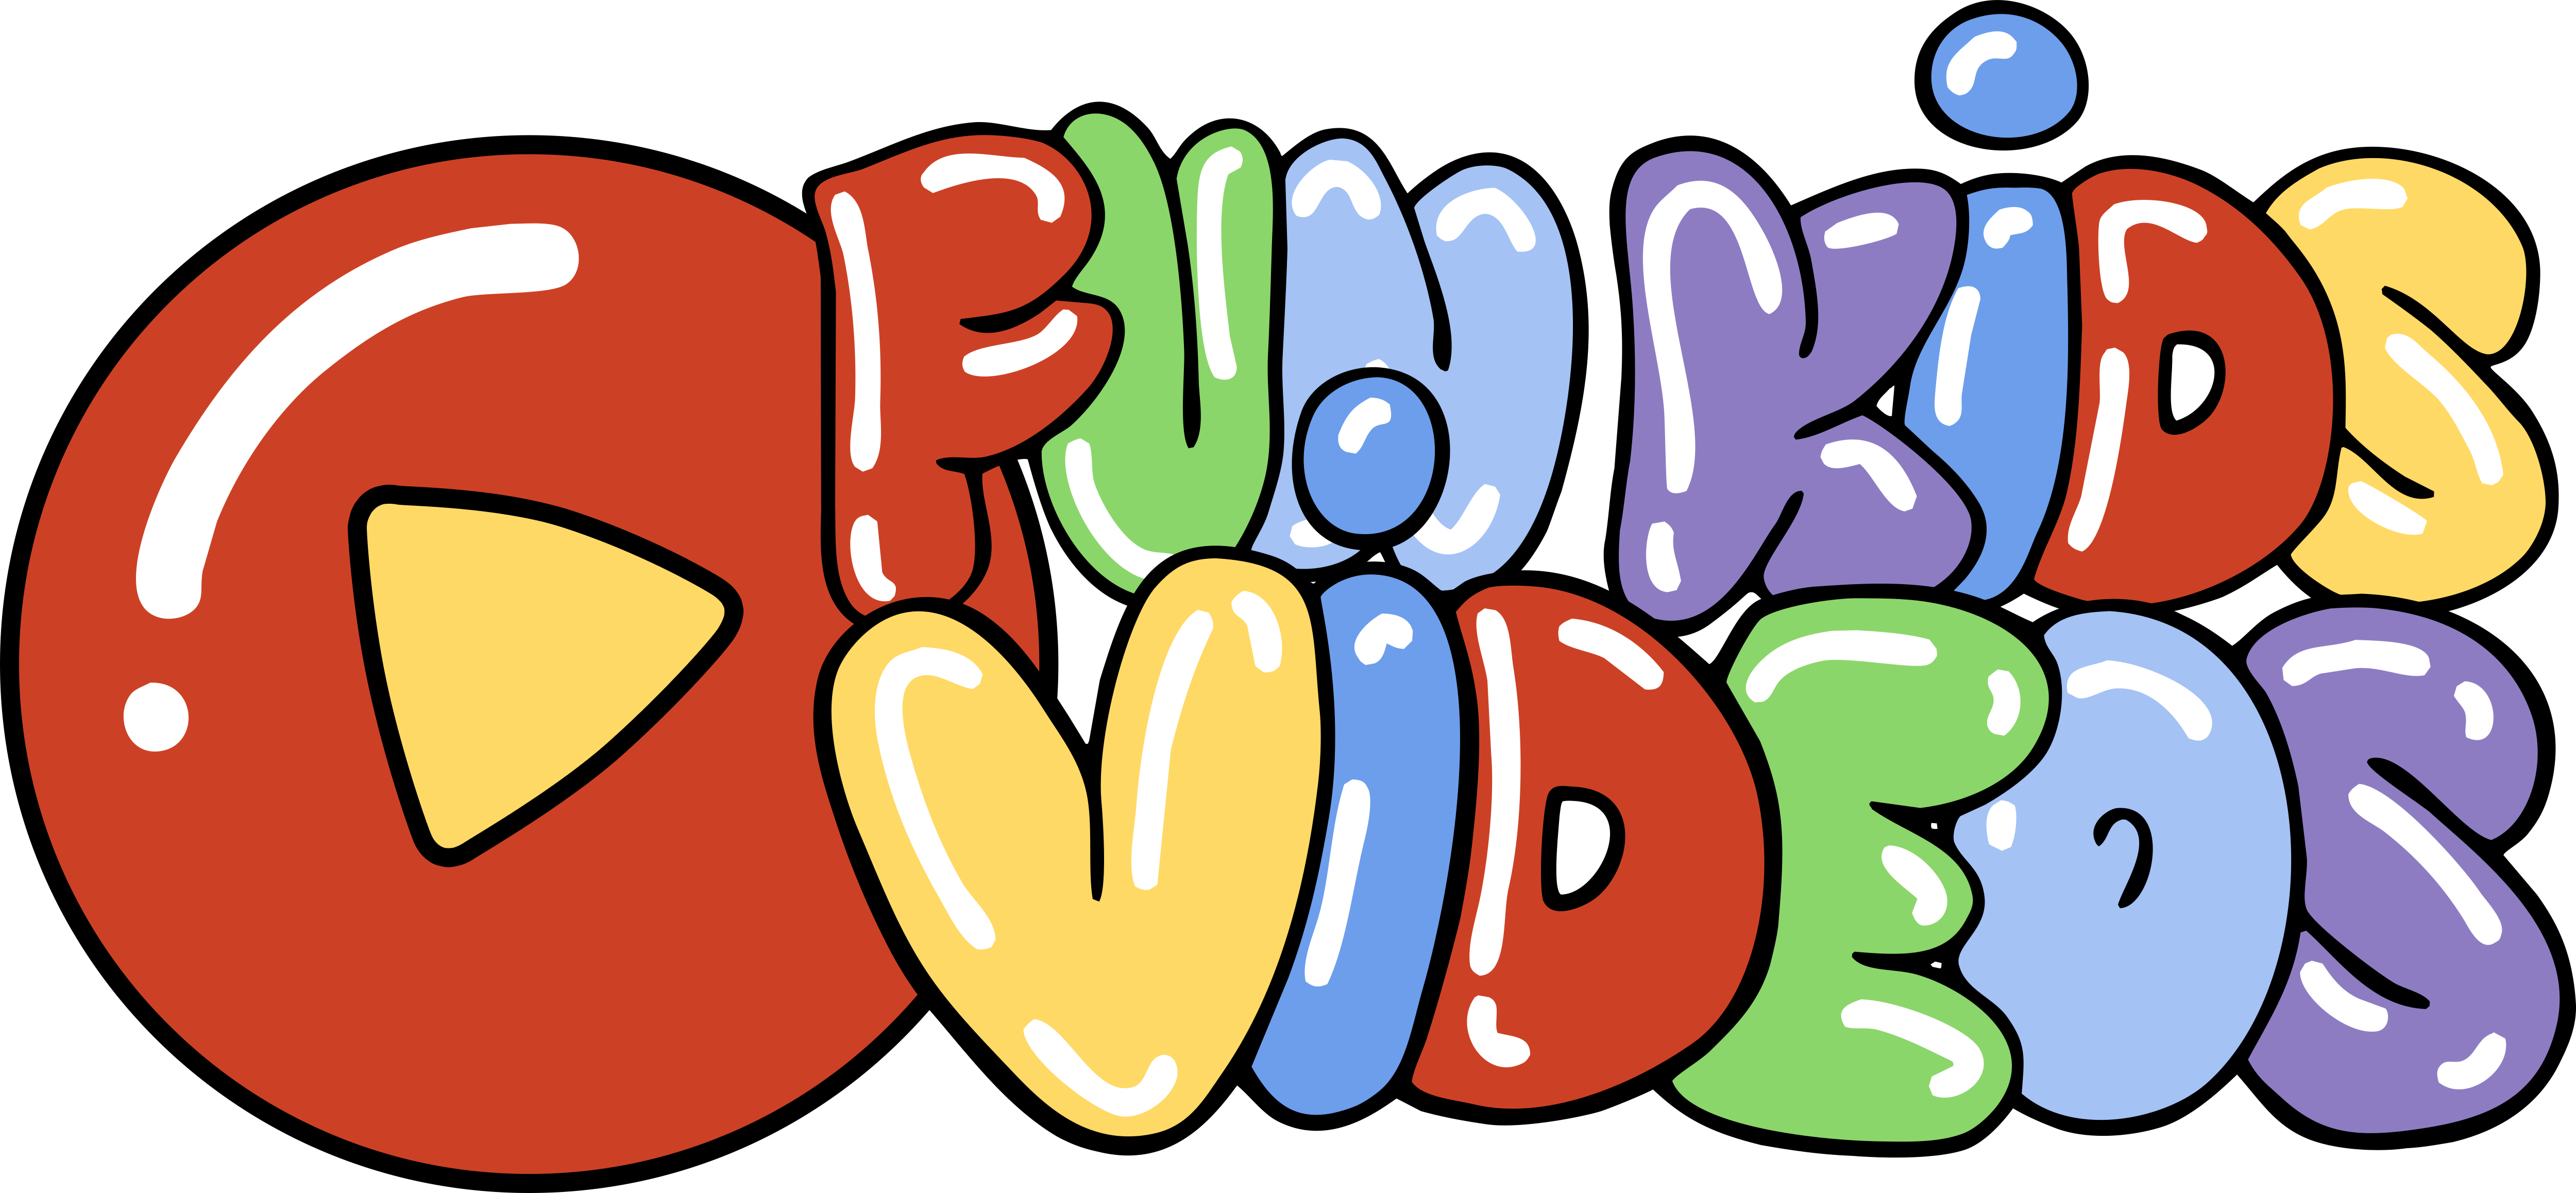 Fun Kids Videos - Fun Kid Videos (5000x2316), Png Download